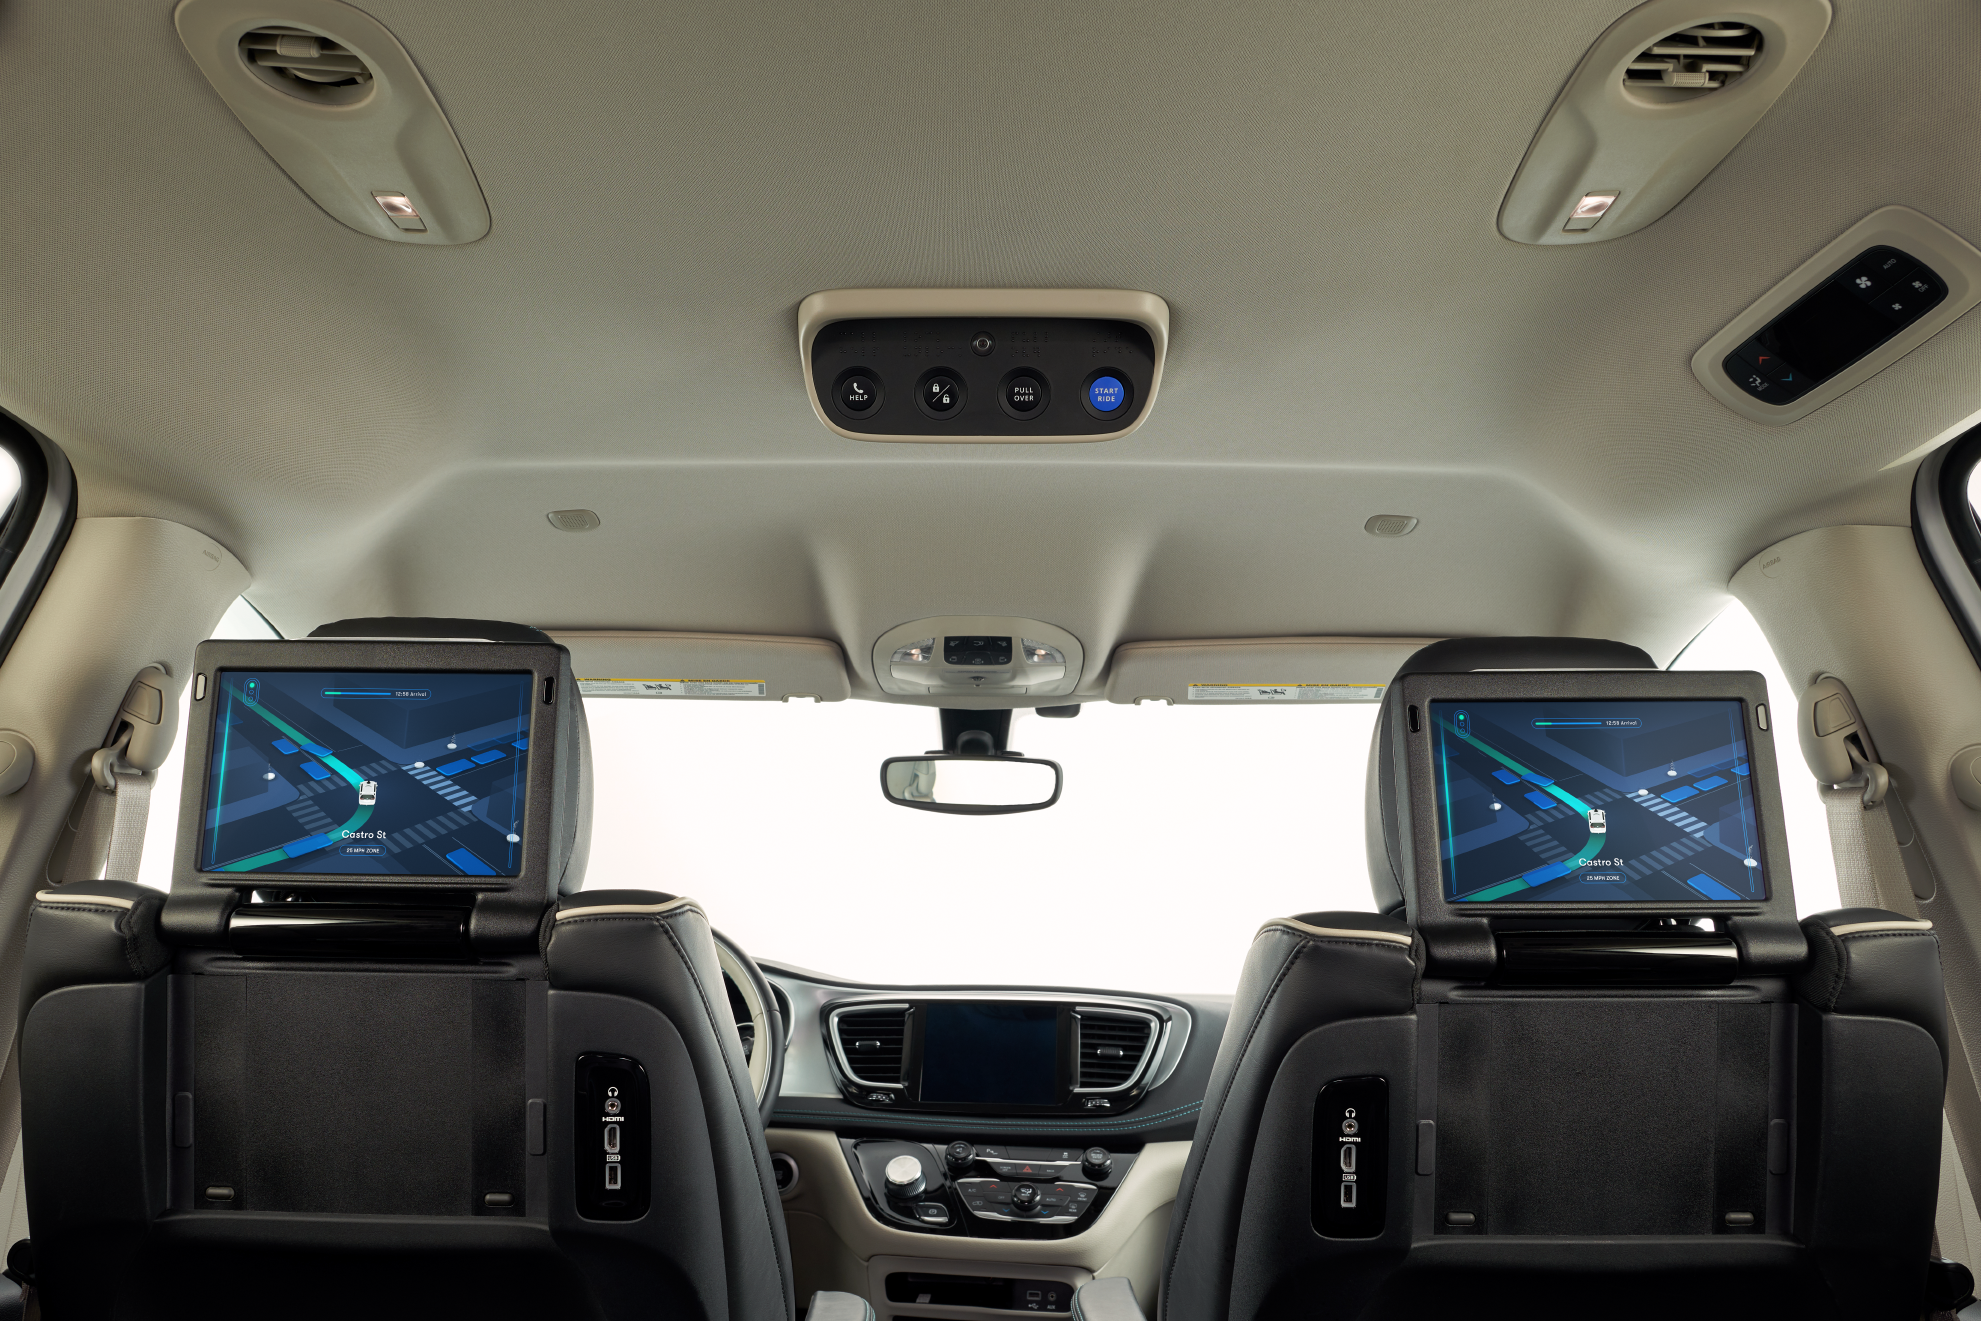 Inside Waymo's Chrysler Pacifica minivan.